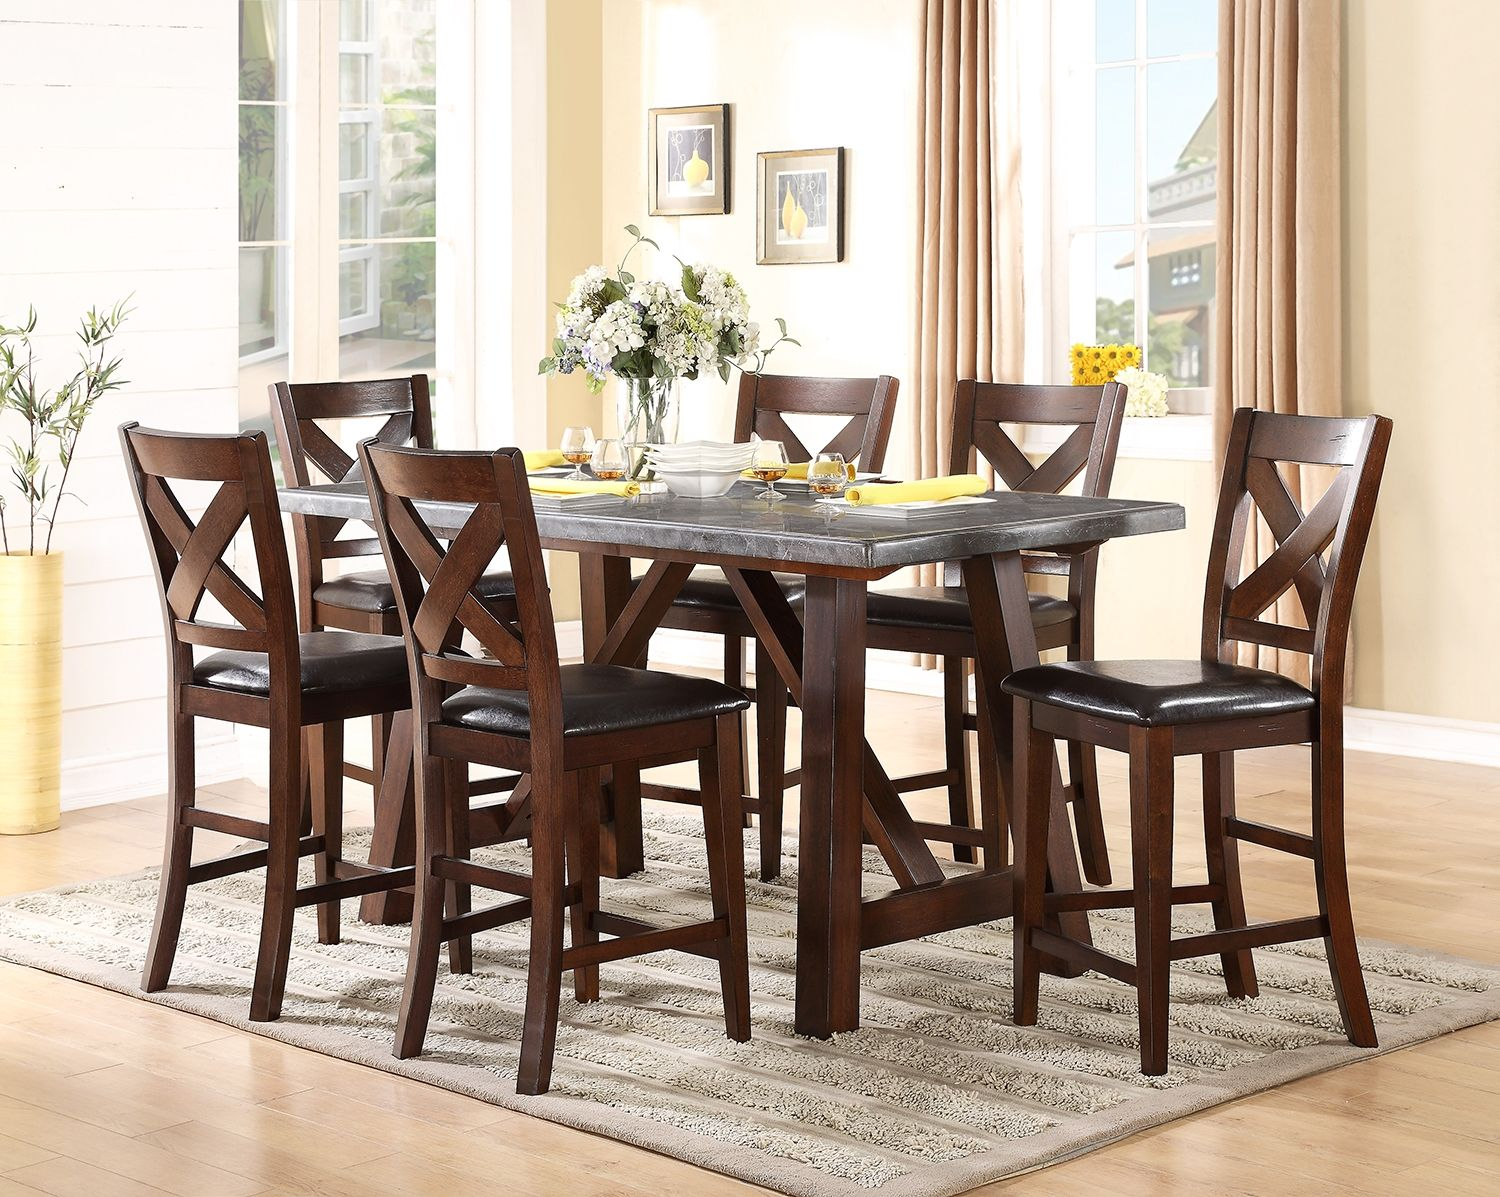 dining room furniture bluestone piece counter height table accent pieces living bedroom and youth along with mattresses pottery barn folding outdoor storage large white round